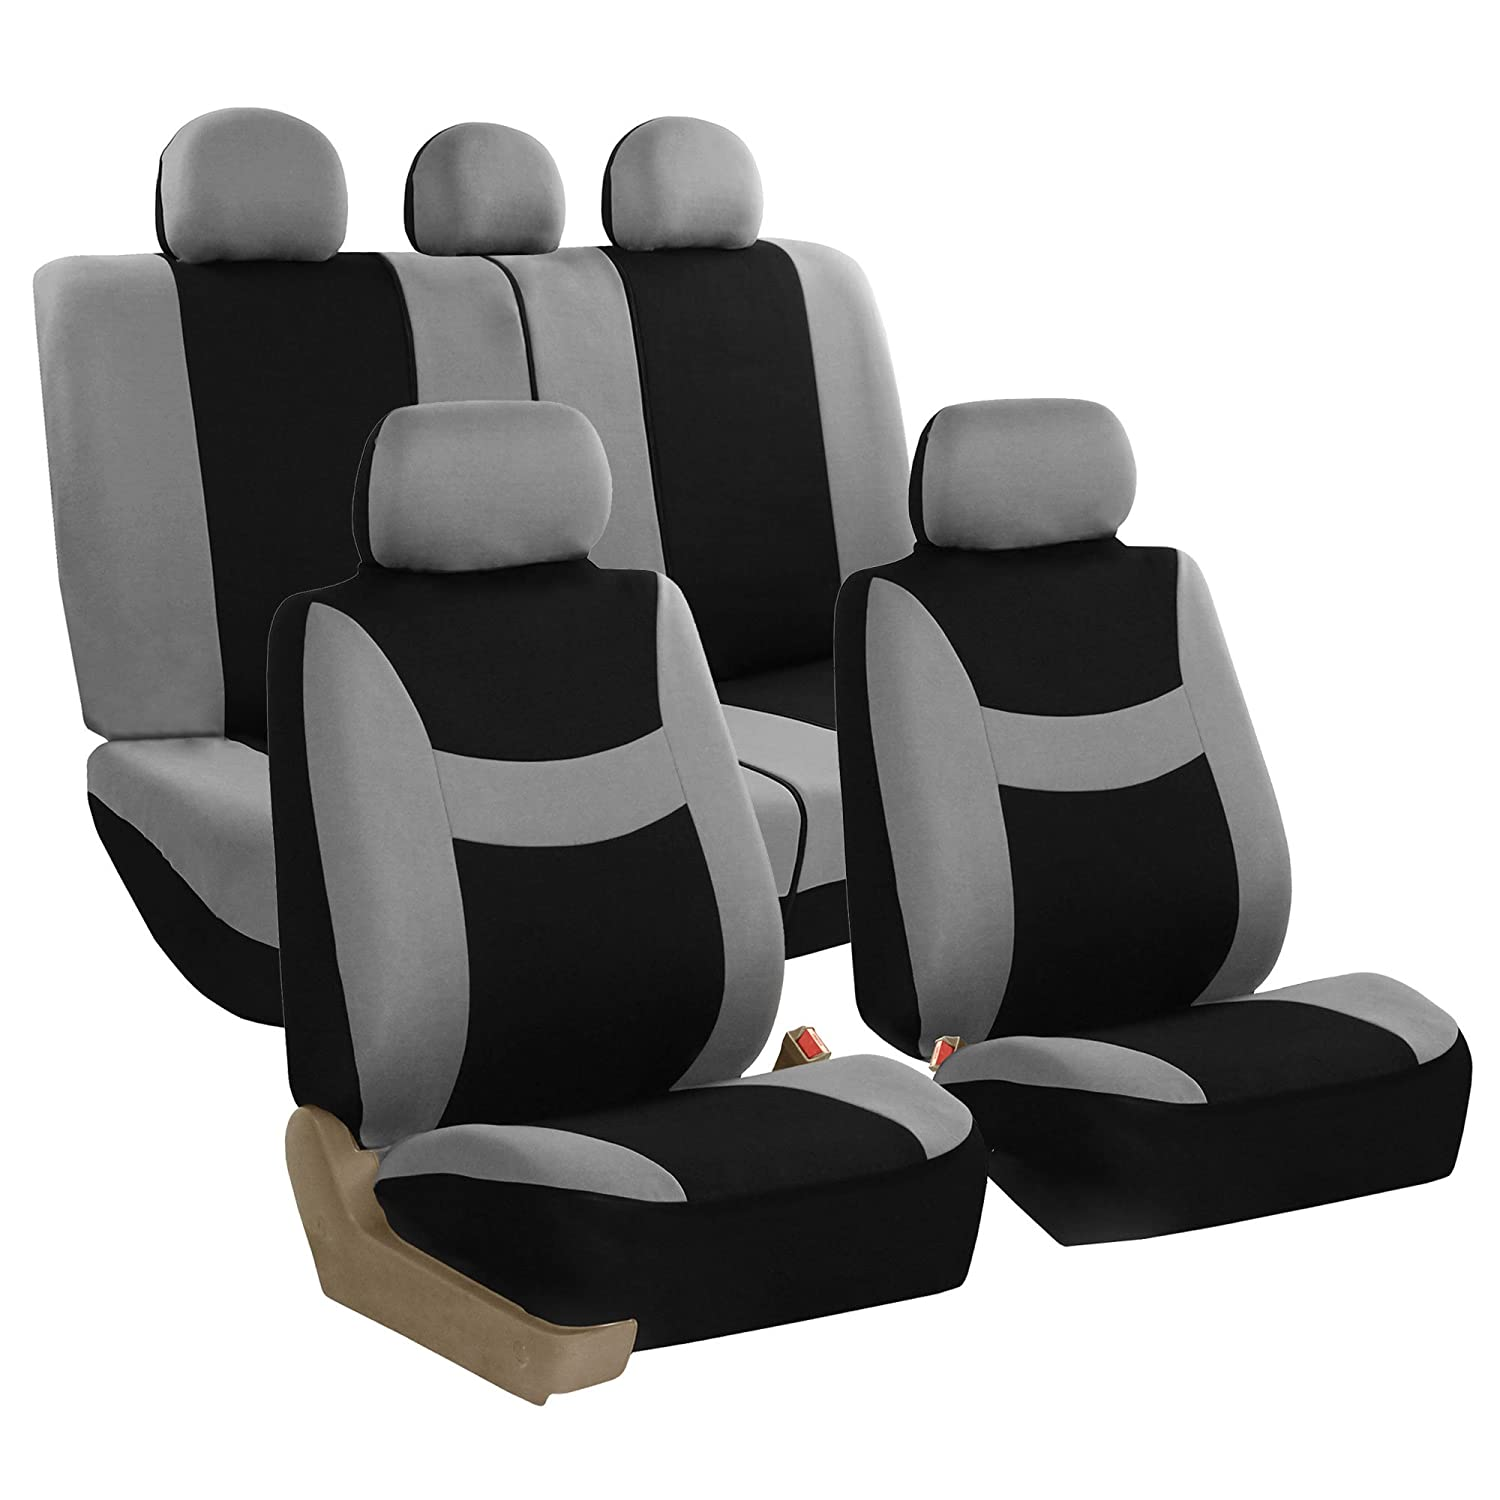 FH Group FB030MINT115 full seat cover Side Airbag Compatible with Split Bench Mint FB030MINT115-SEAT